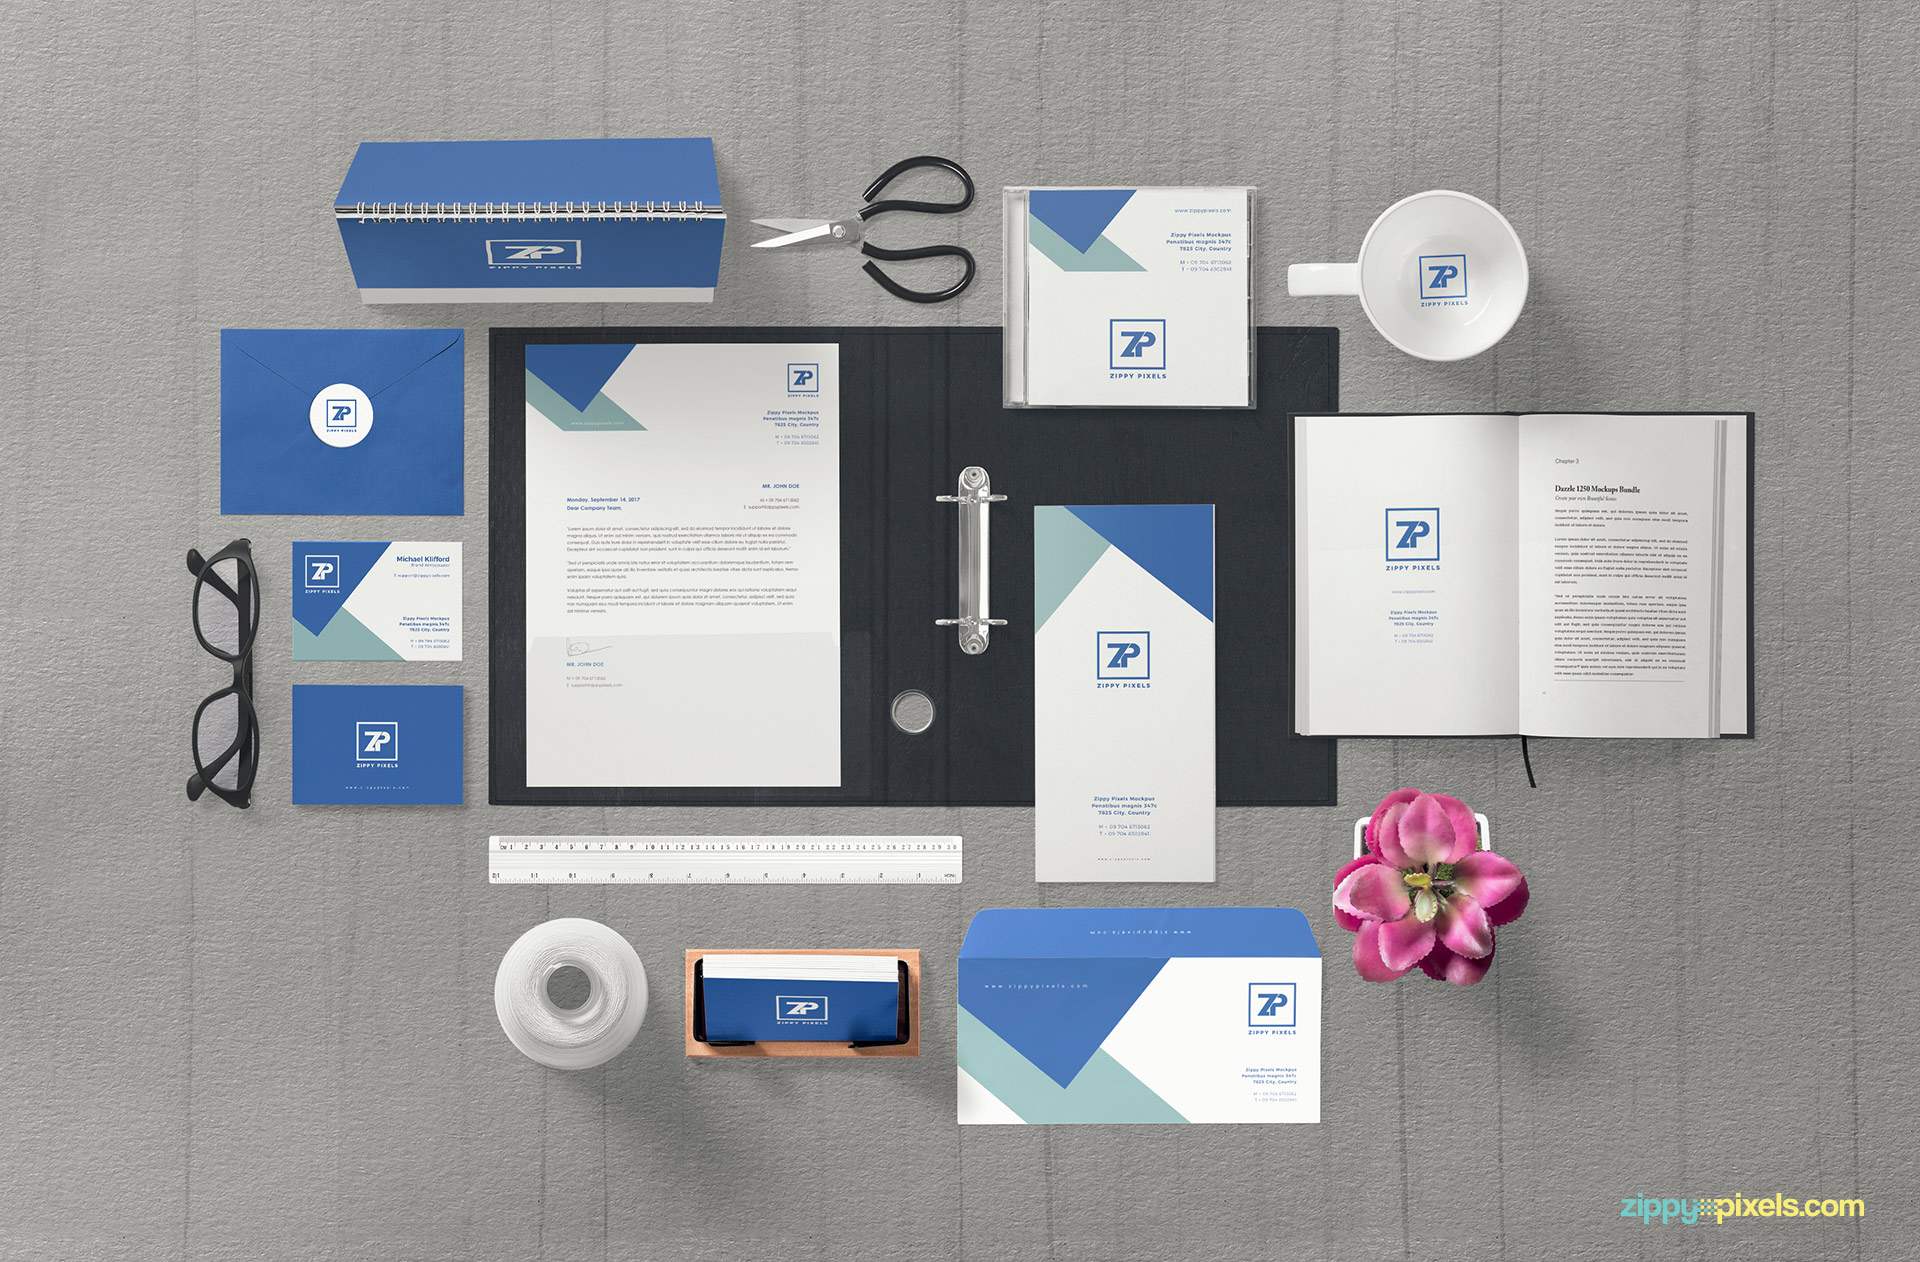 Full customizable free corporate identity mockup PSD.